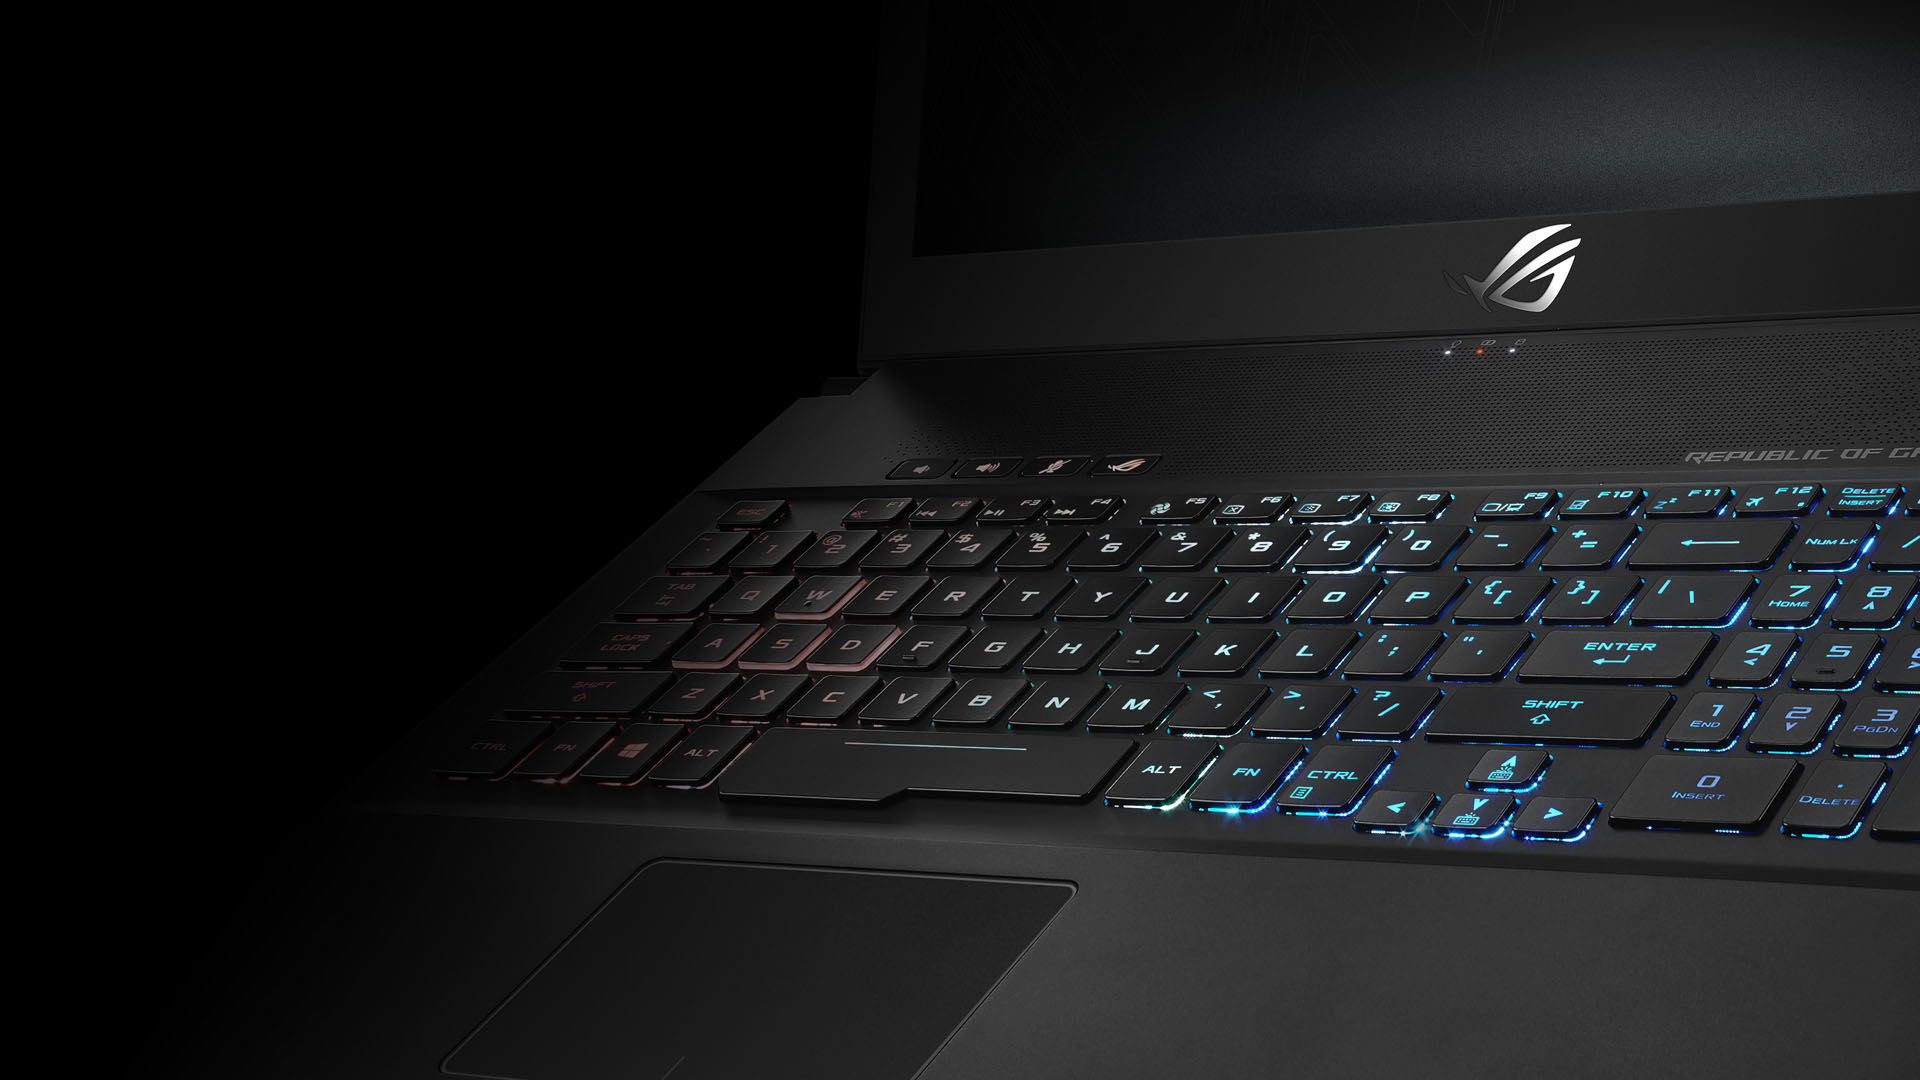 The Best Gaming Laptops of 2018 - BarTechTV